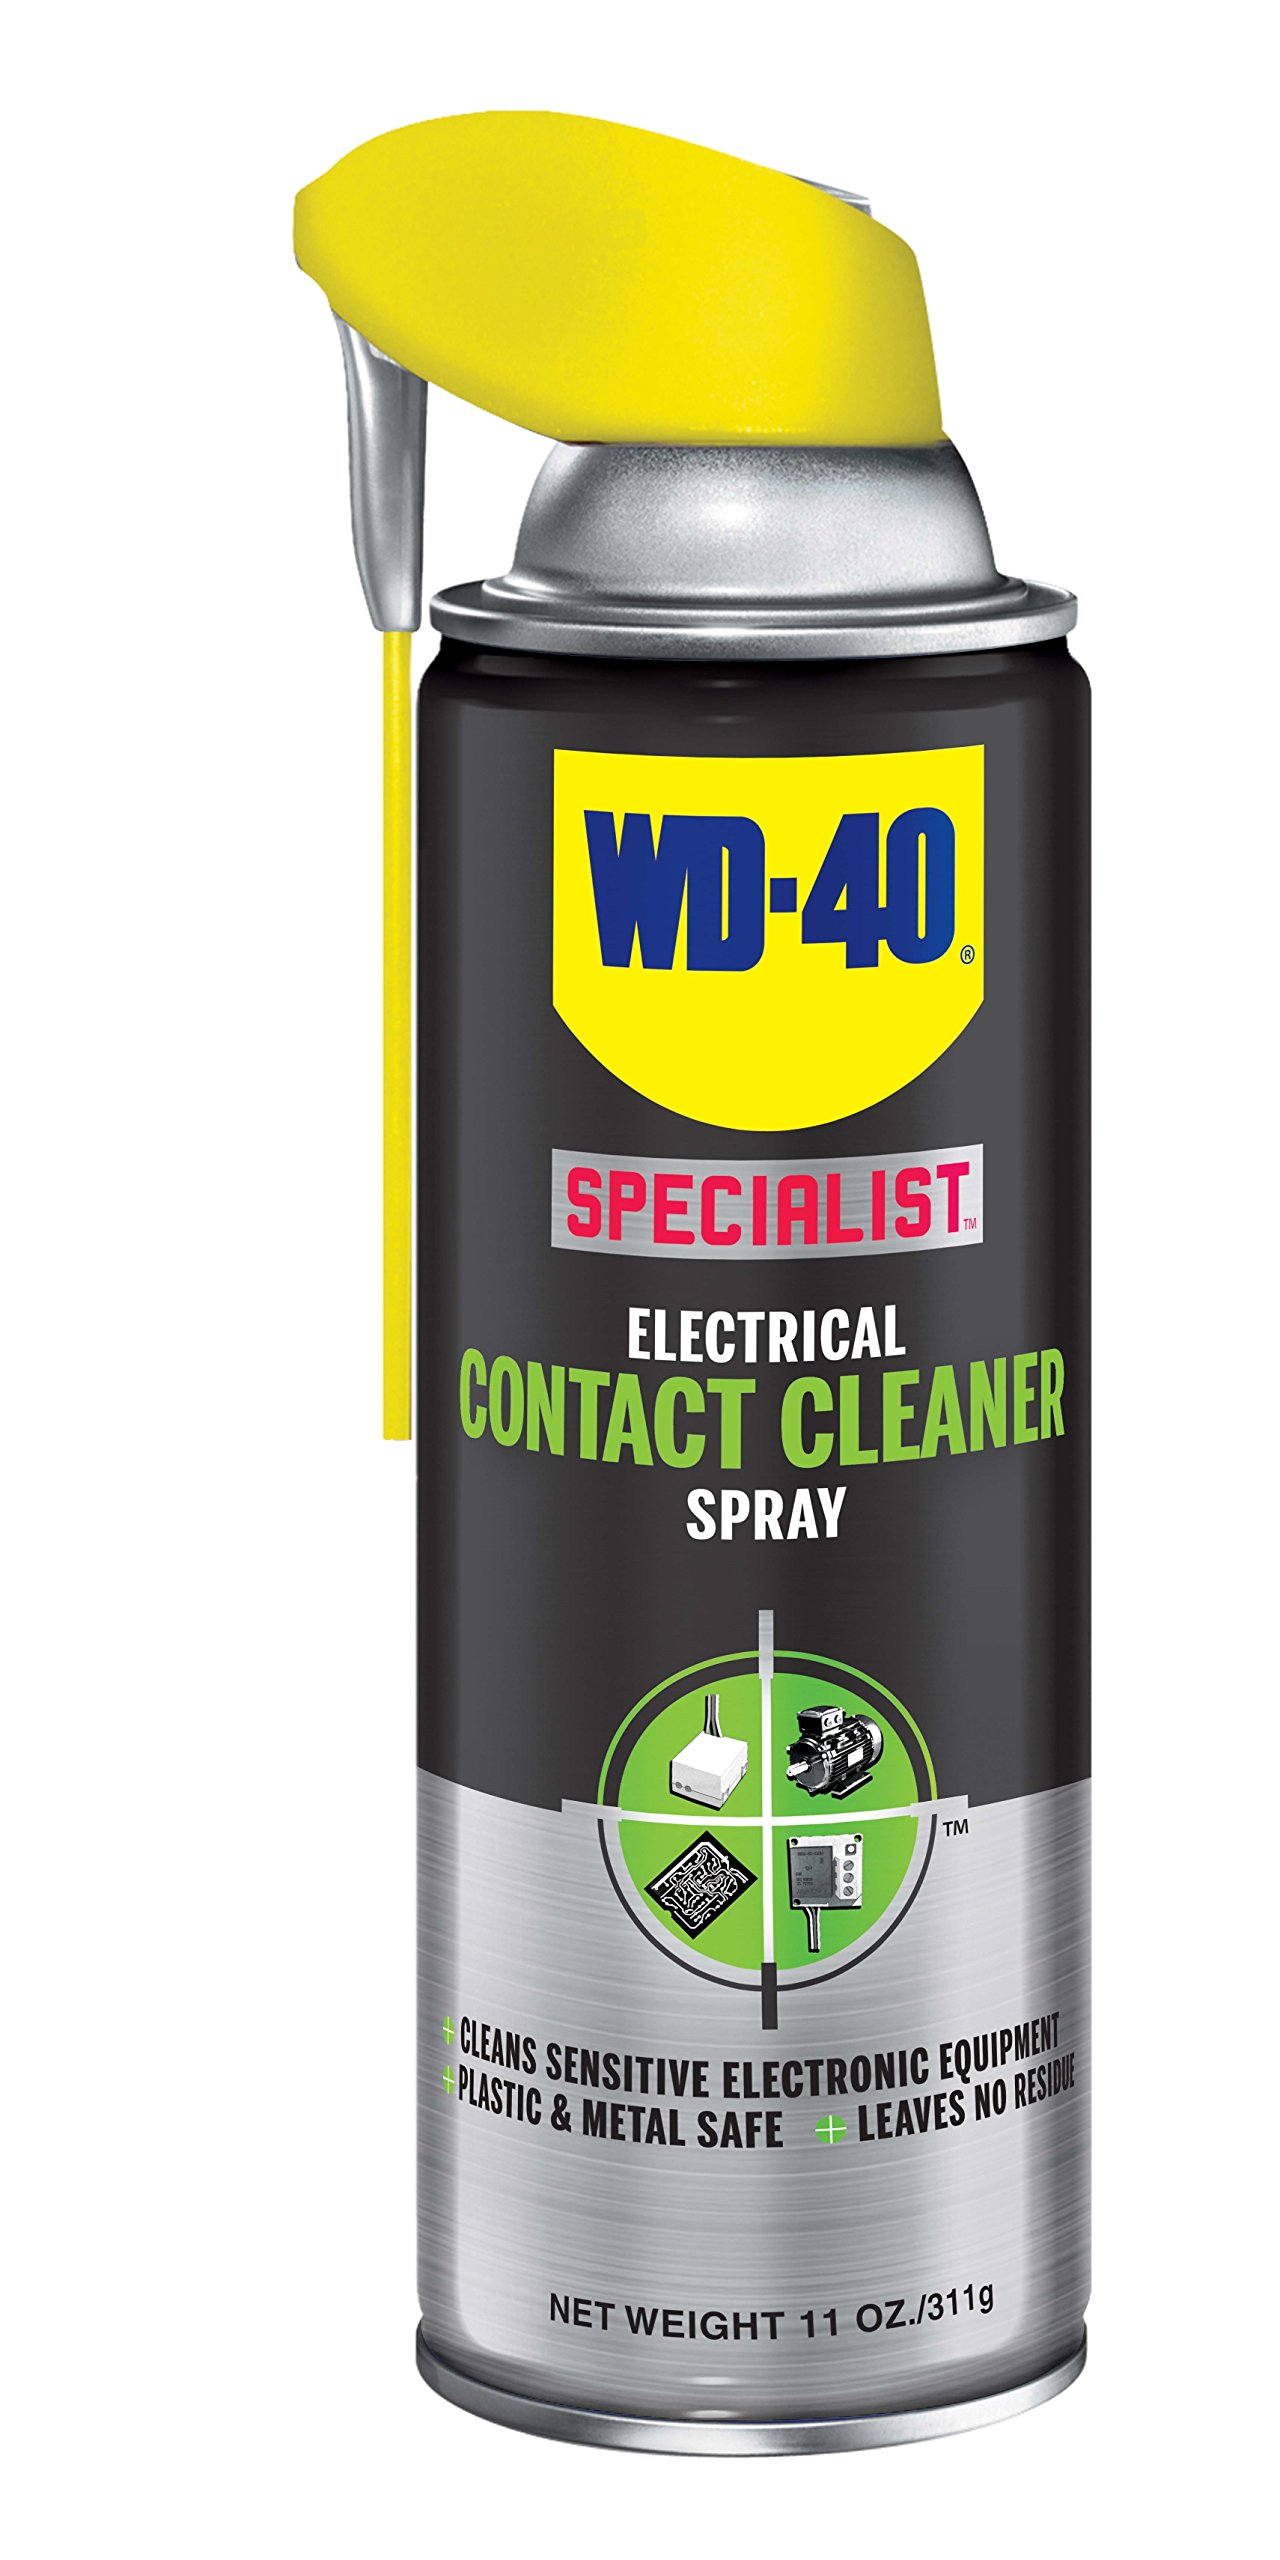 WD-40 Specialist Electrical Contact Cleaner Spray - Electronic & Electrical Equipment Cleaner. 11 oz. (Pack of 6)